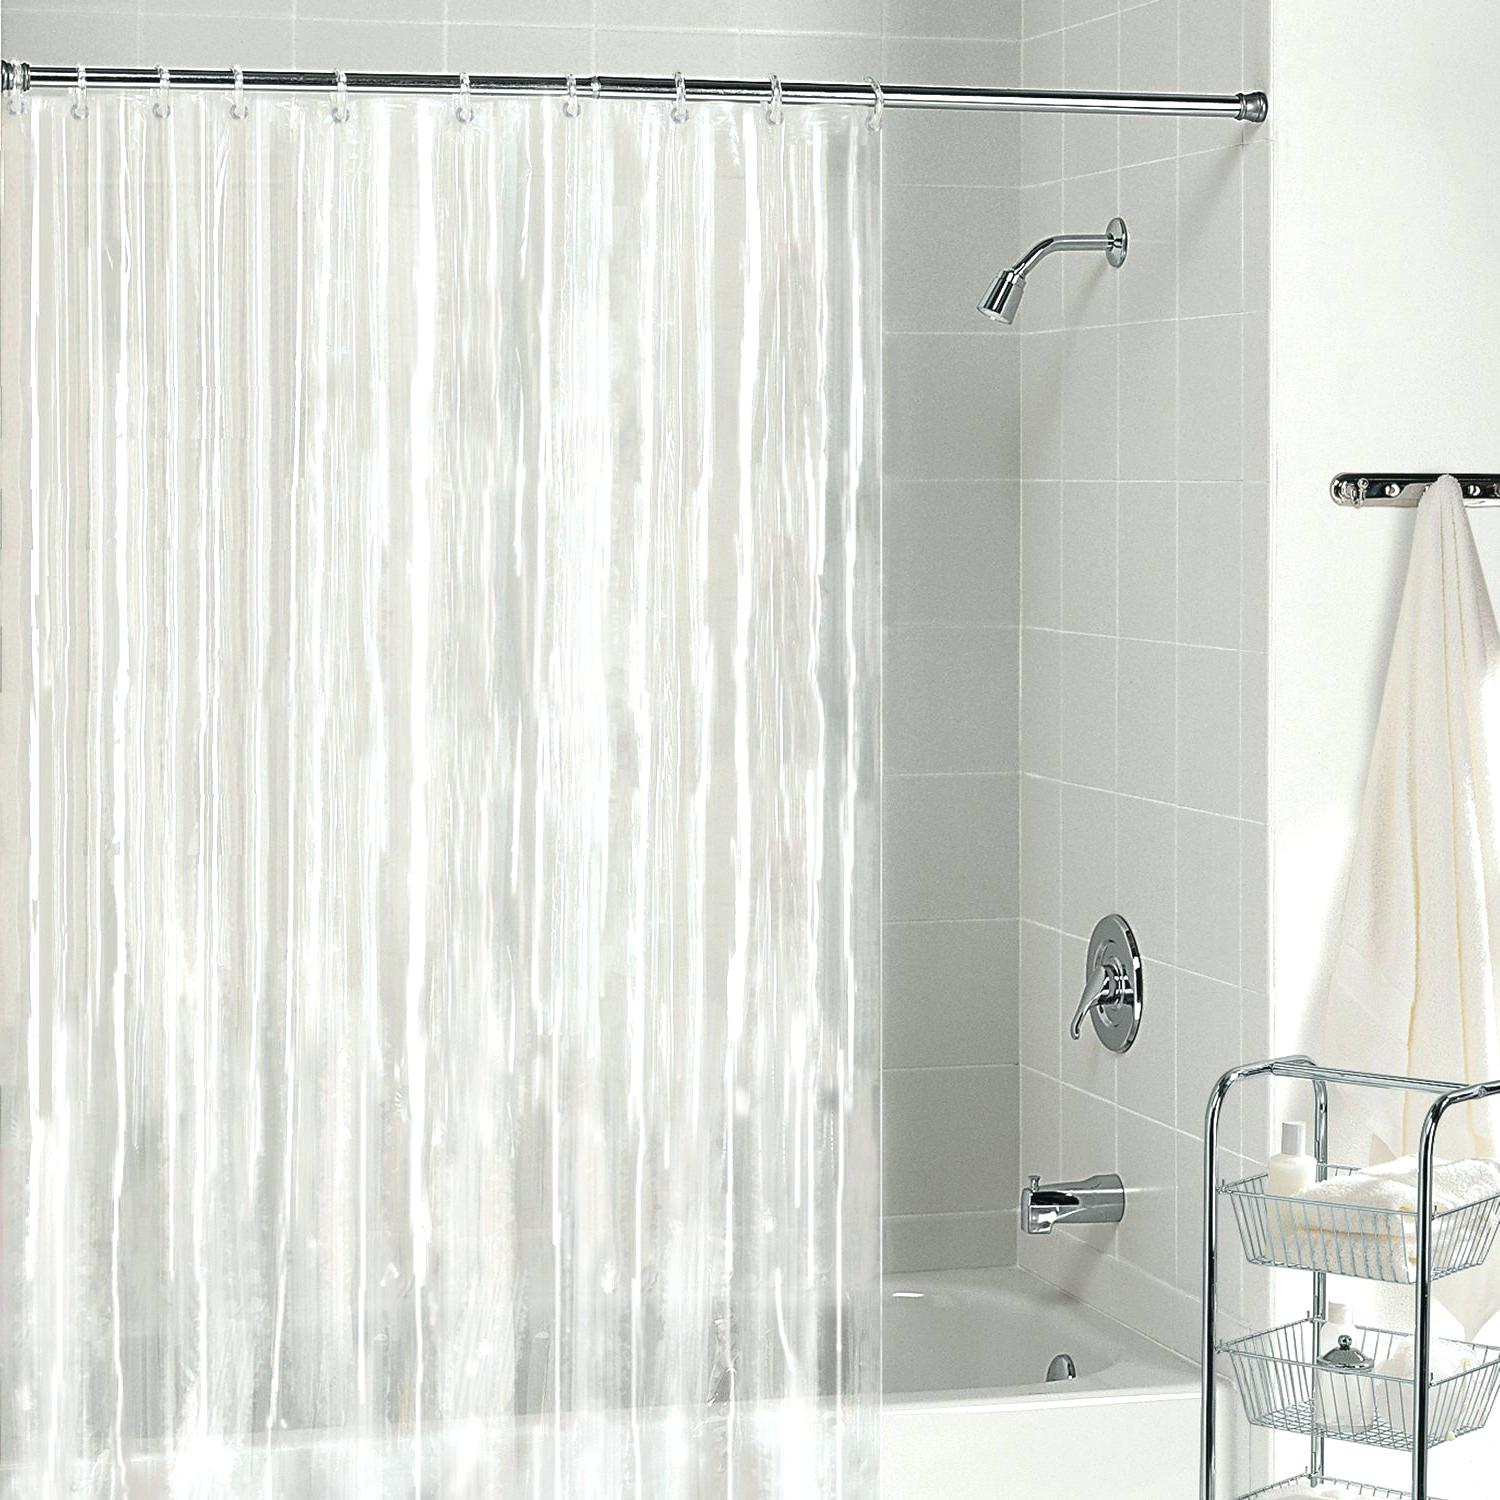 Stall Shower Curtain With Suction Cups Shower Curtains Design Throughout  Size 1500 X 1500